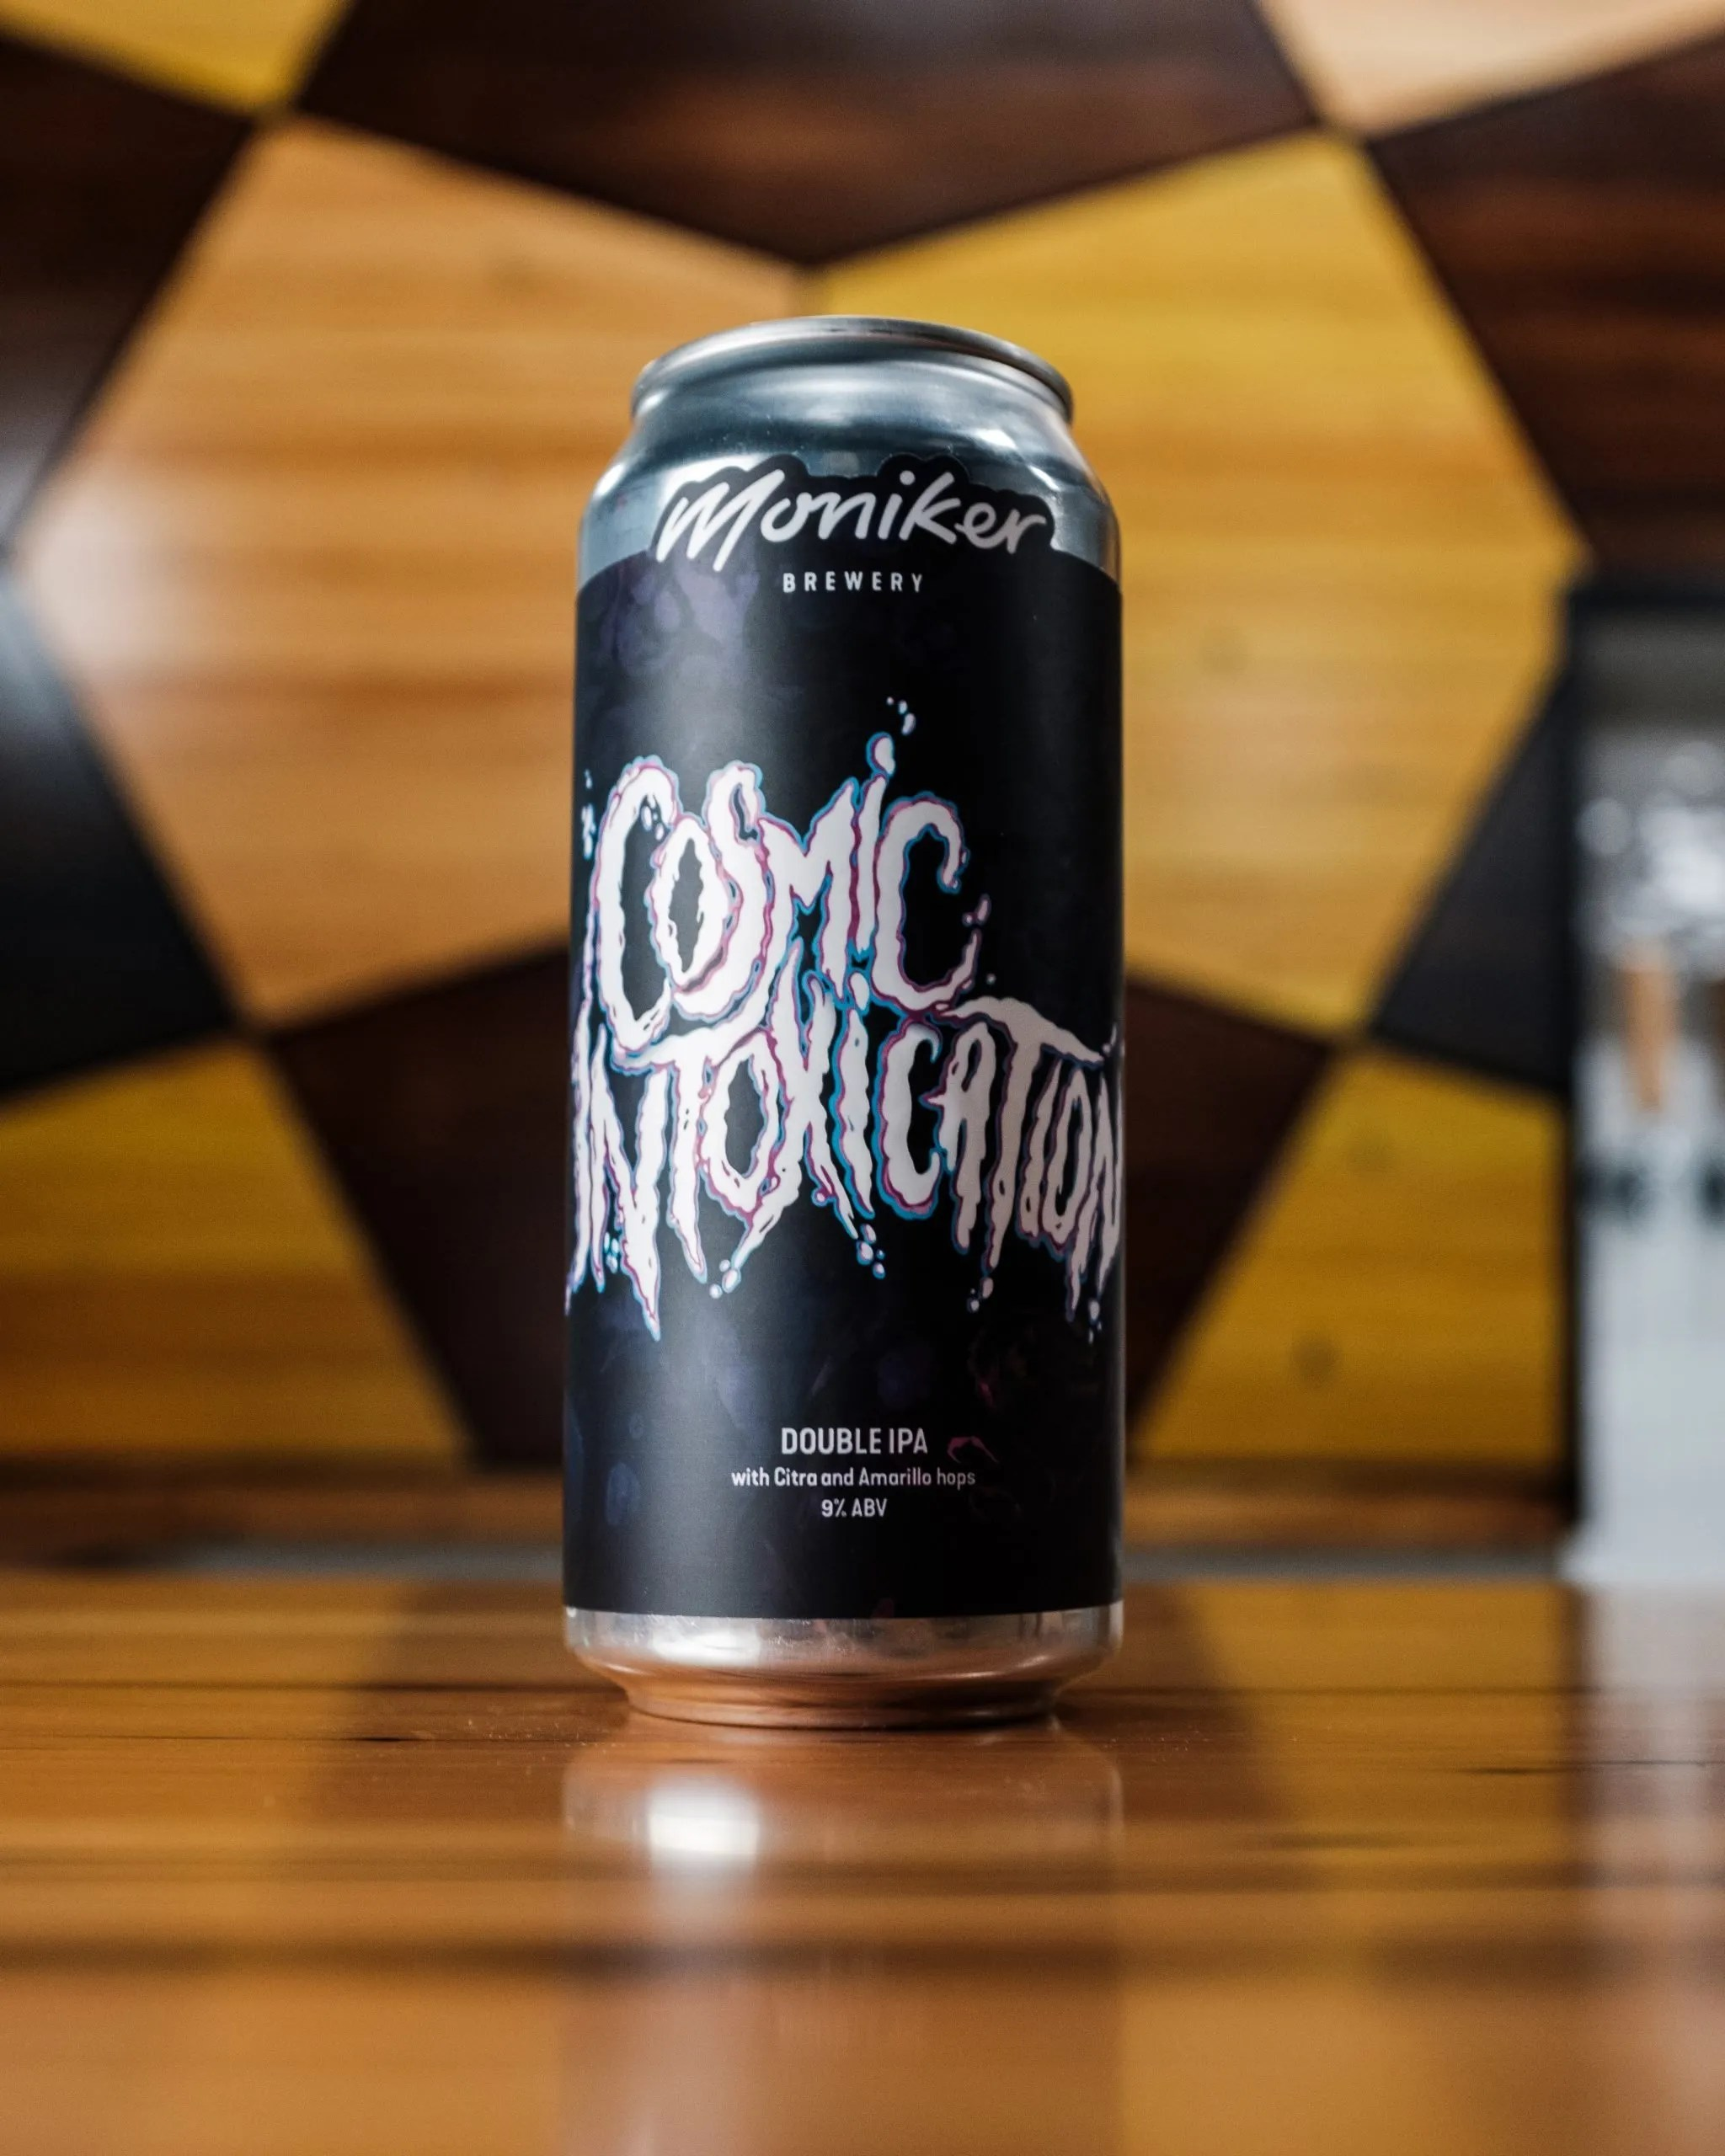 Cosmic Intoxication from Moniker Brewery